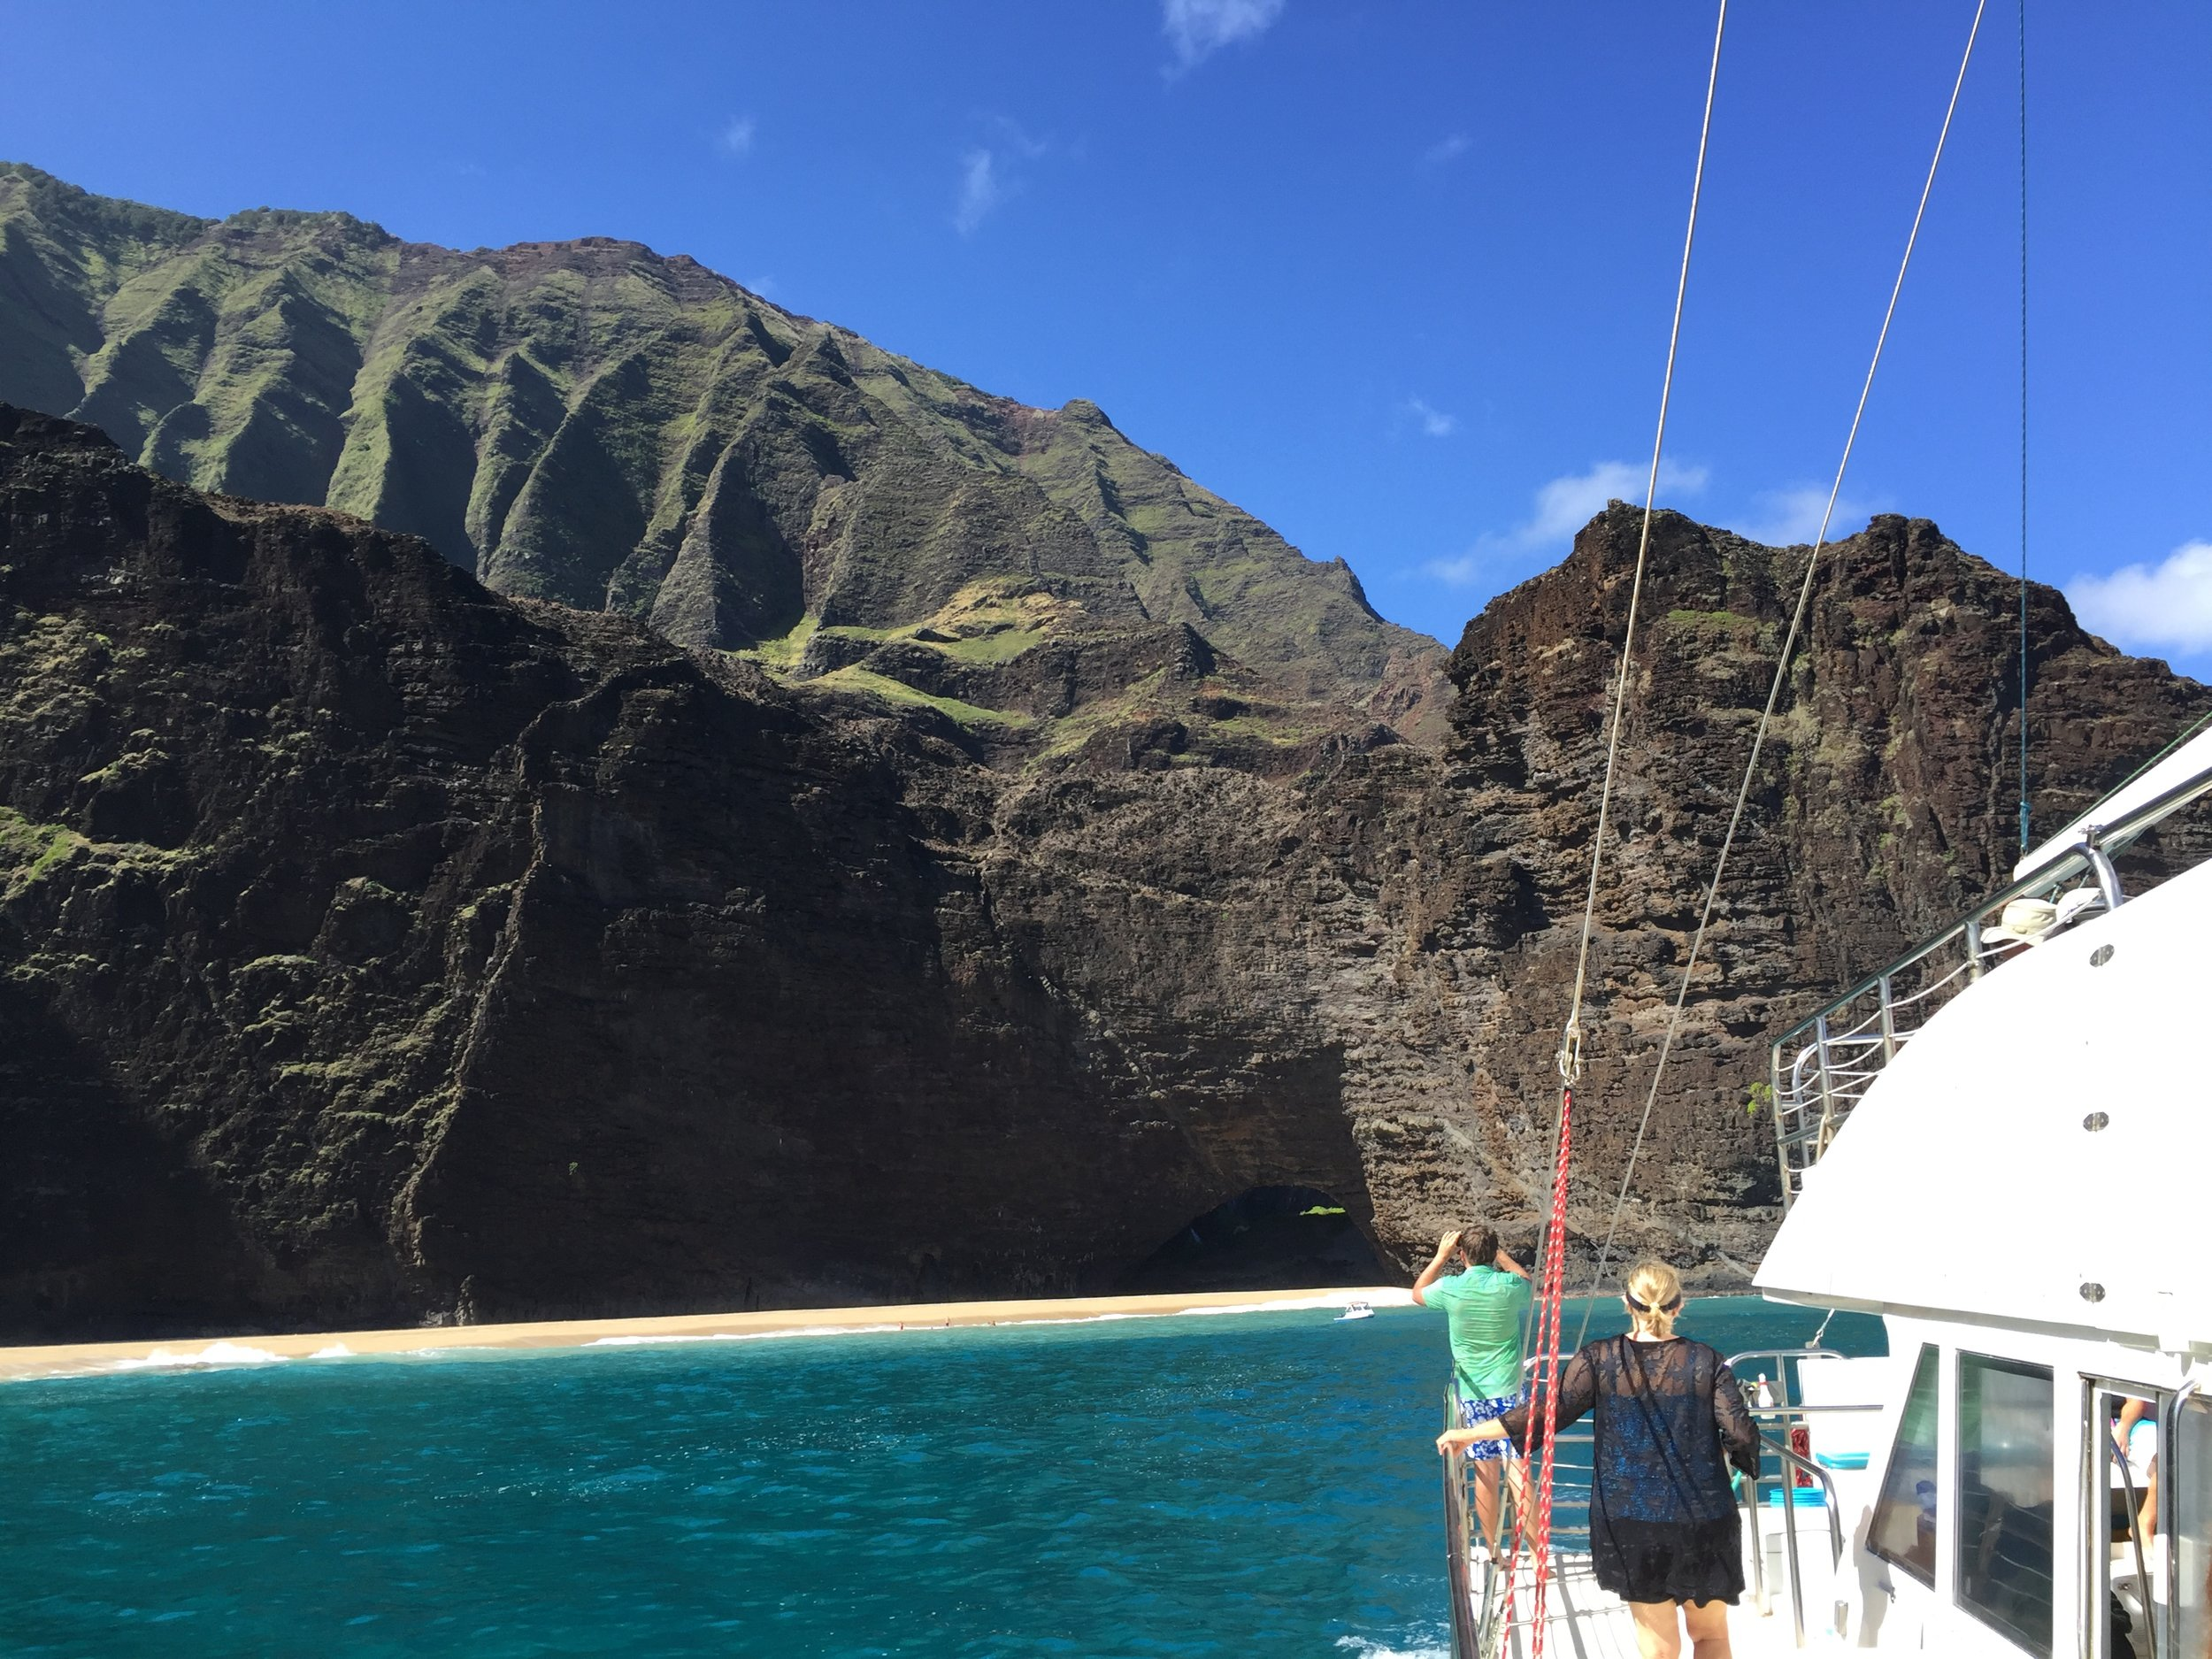 I took this shot of Kauai's Napali Coast from the deck of our catamaran . . . (August 2016)